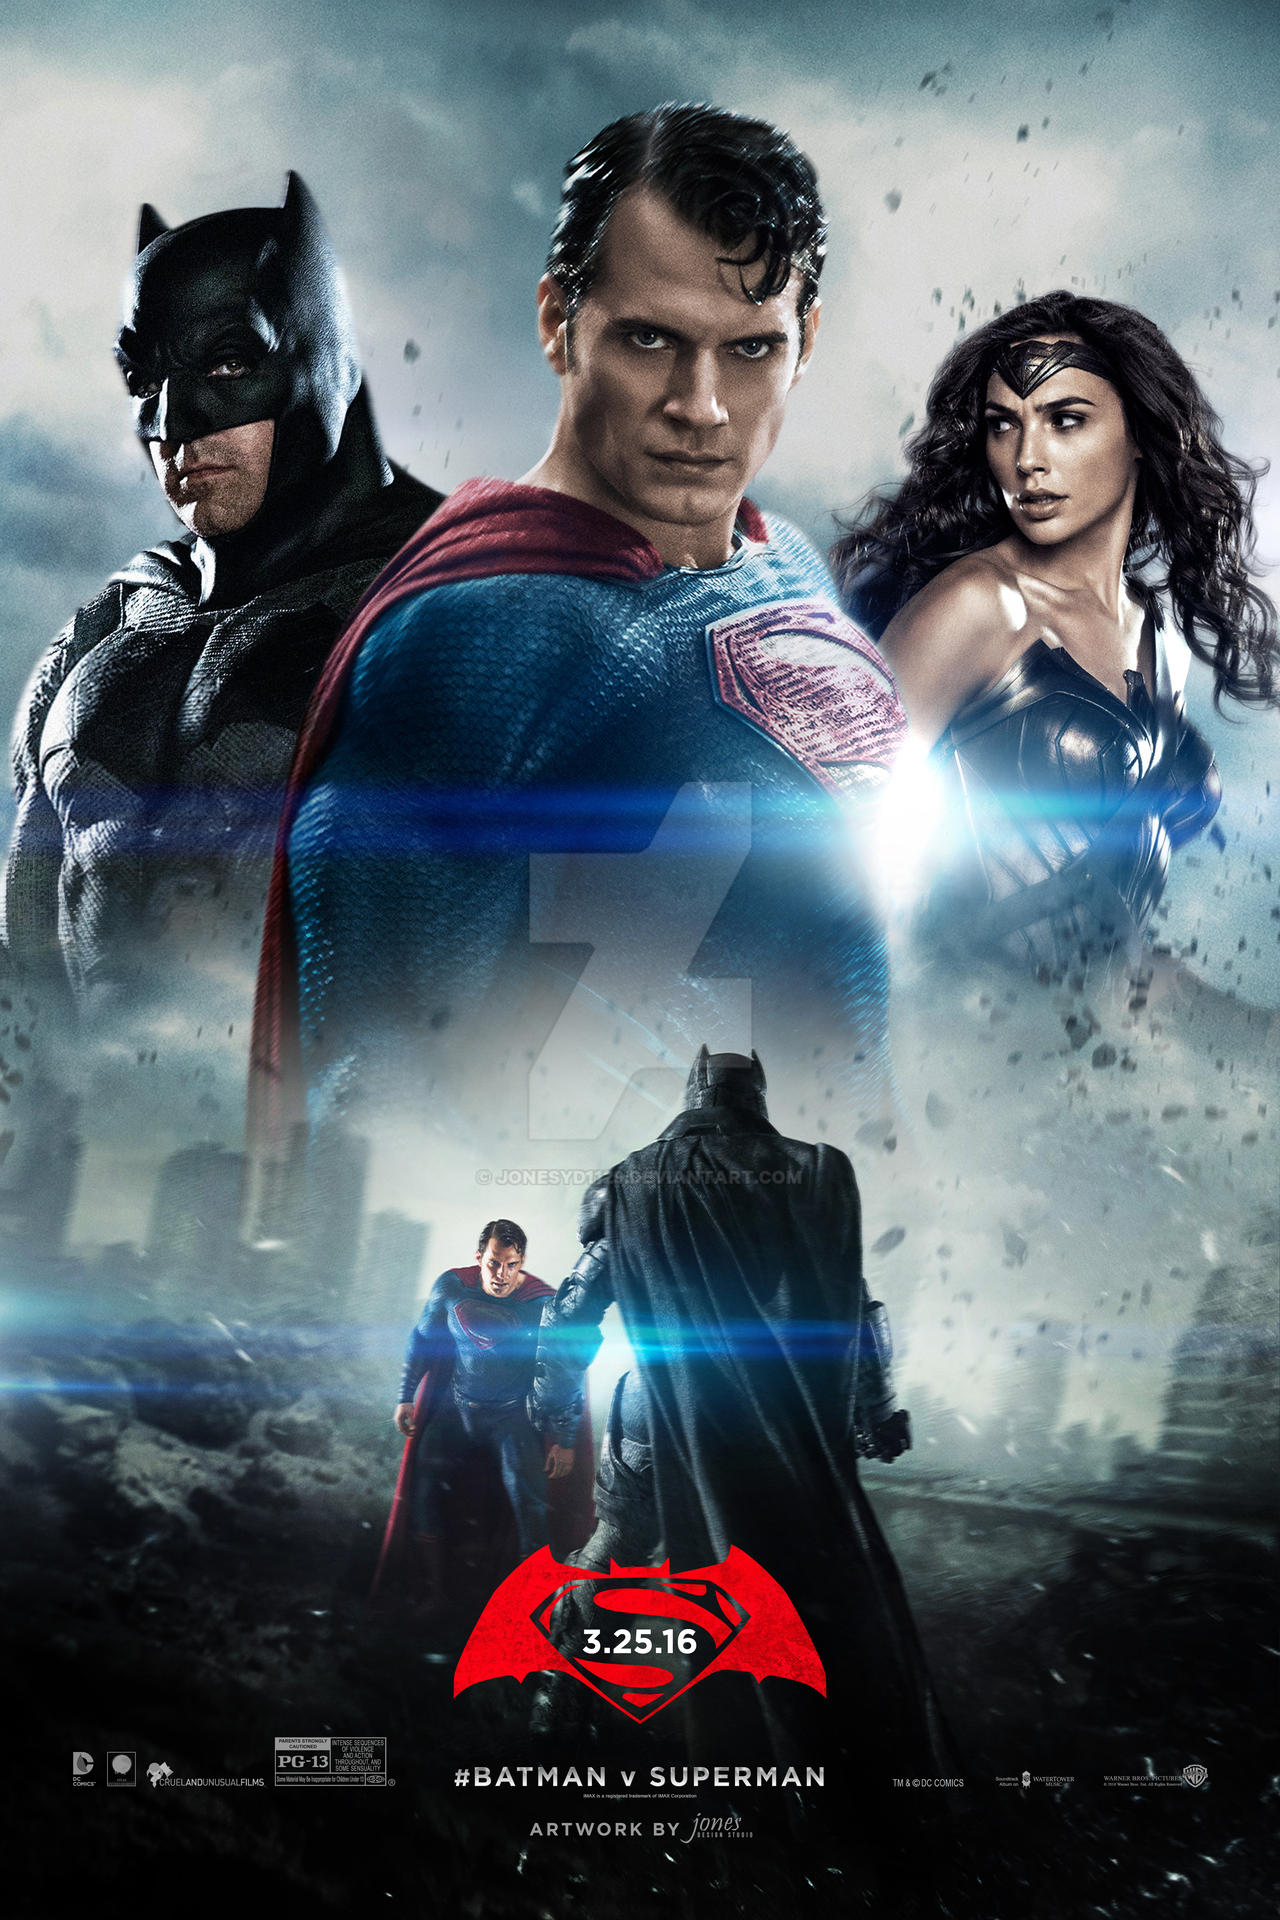 Batman Vs Superman Dawn of Justice 2016 THEATRICAL BluRay 720p x264 Dual Audio Org Hindi-Eng AAC 5.1 Hon3y 1.4GB